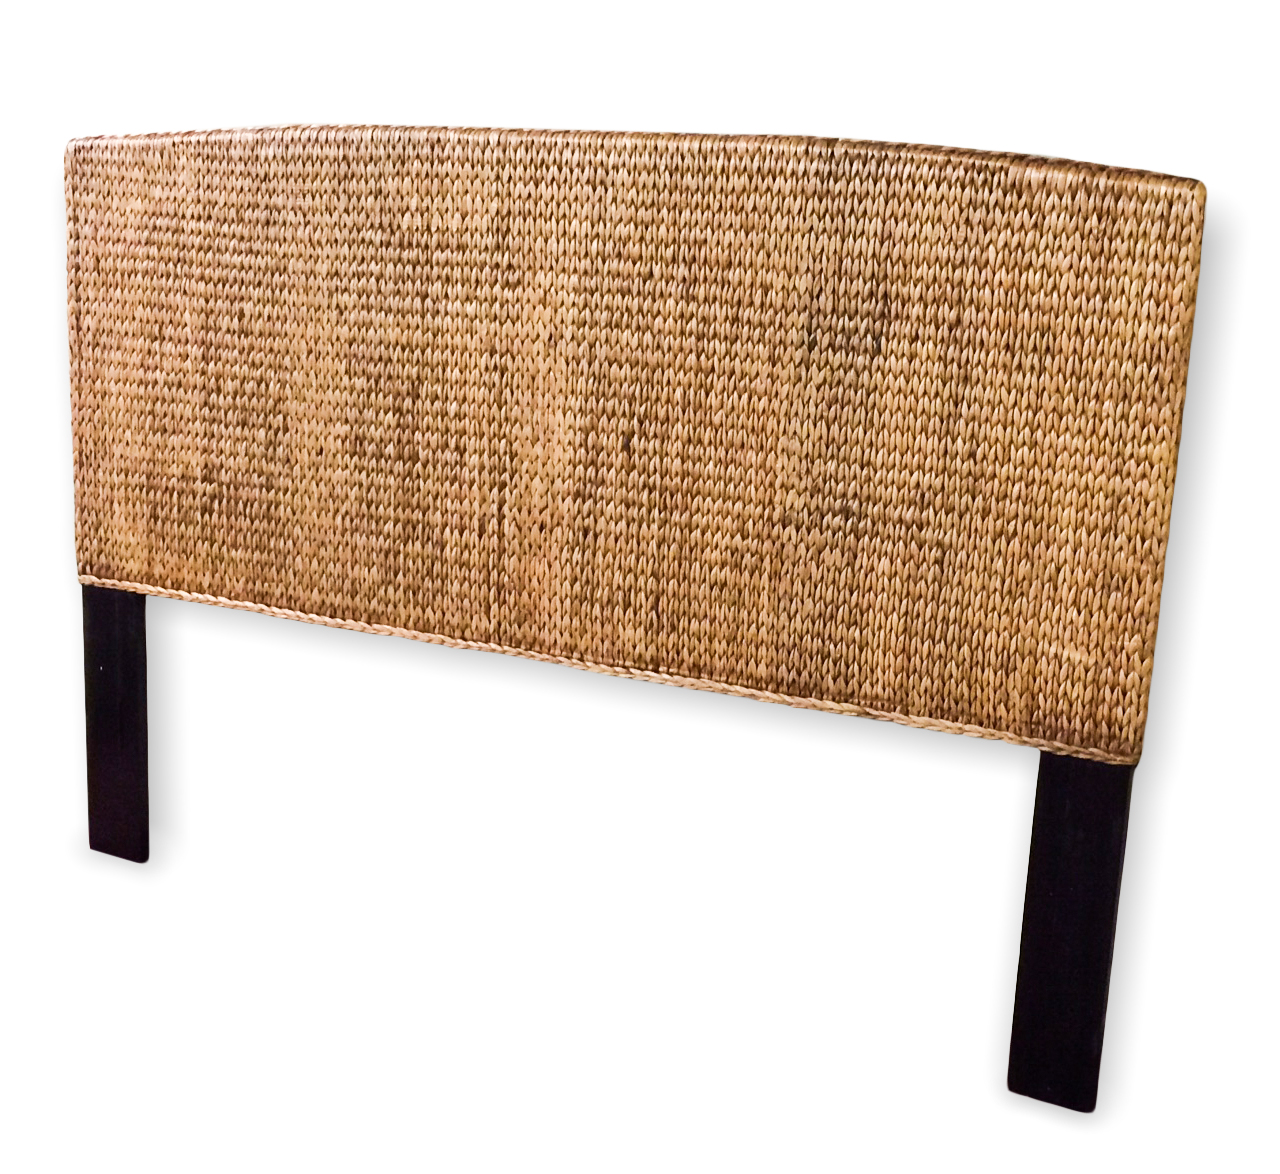 Pottery Barn Wicker Headboard | Seagrass Pottery Barn | Seagrass Headboard King